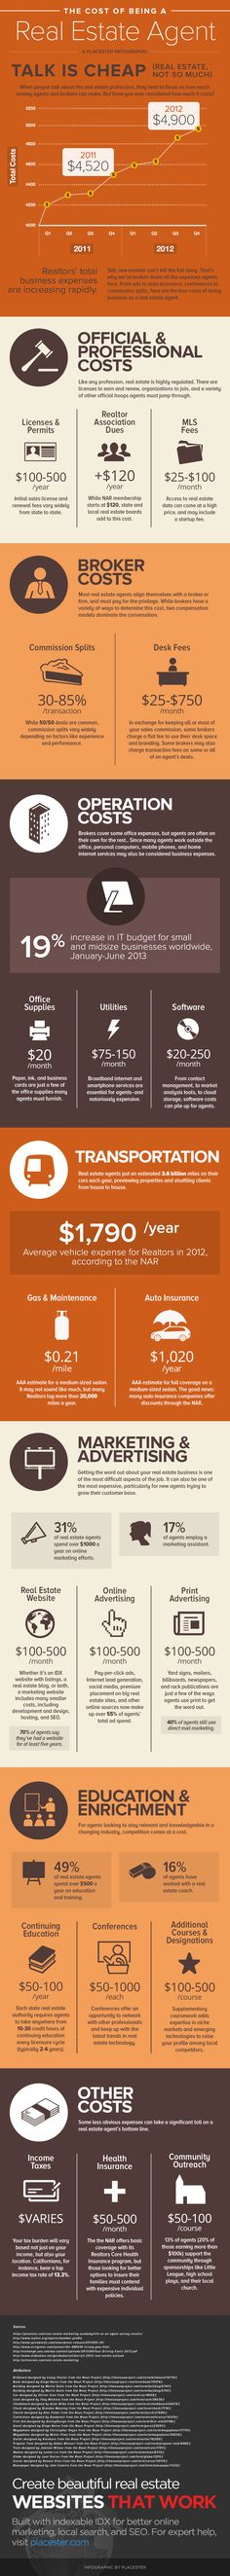 Infographic showing what it will cost you to be a successful real estate agent. http://plcstr.com/1wjPohV #realestate